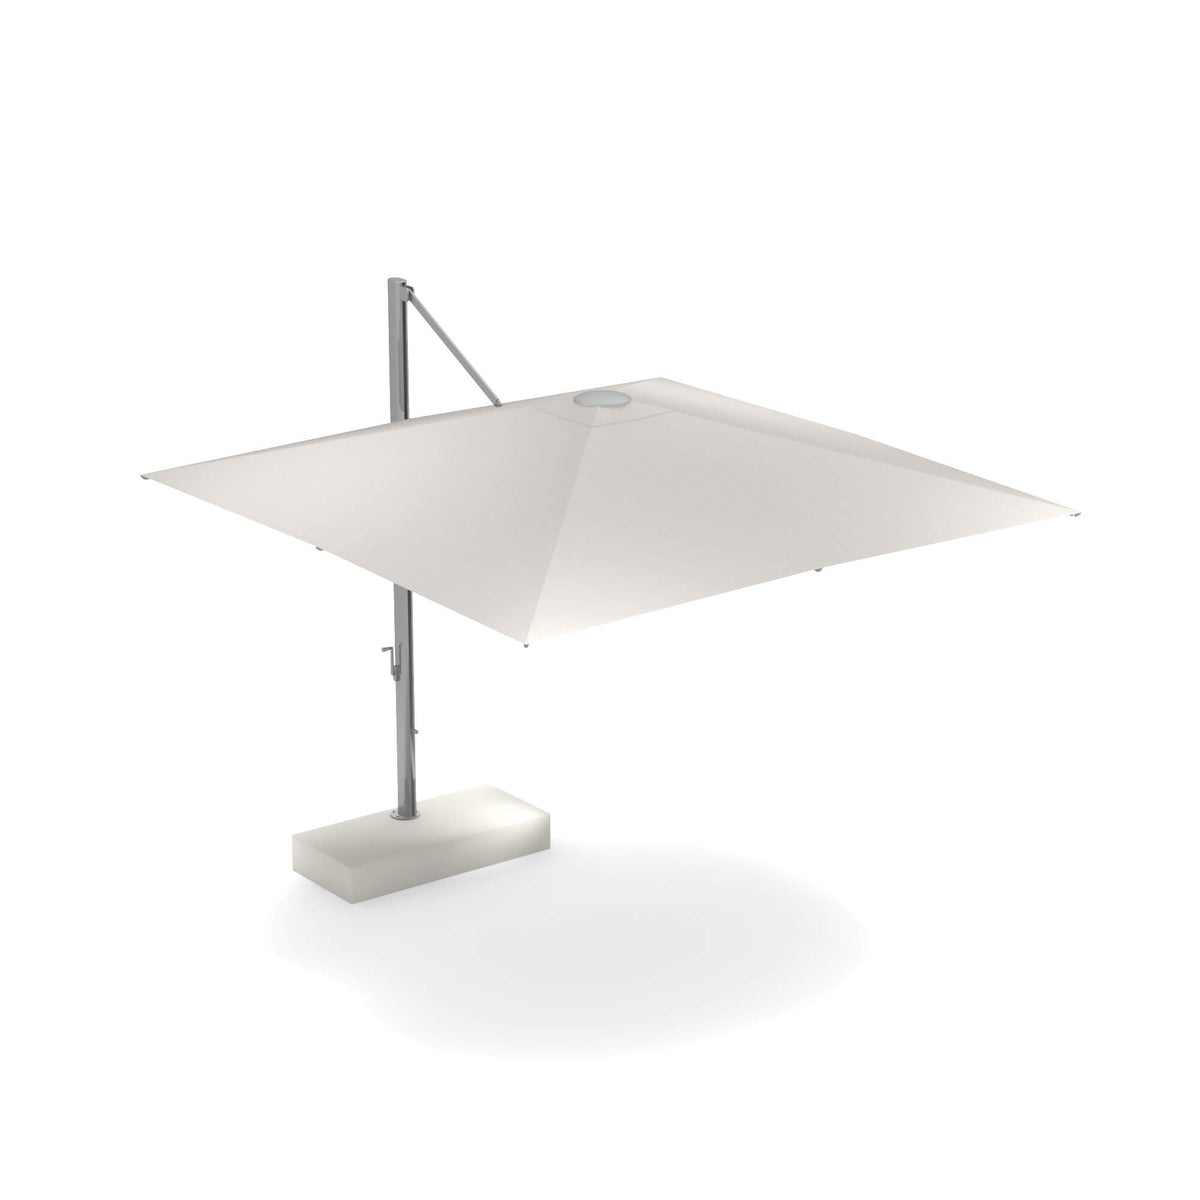 Shade 981 Offset Parasol-Emu-Contract Furniture Store